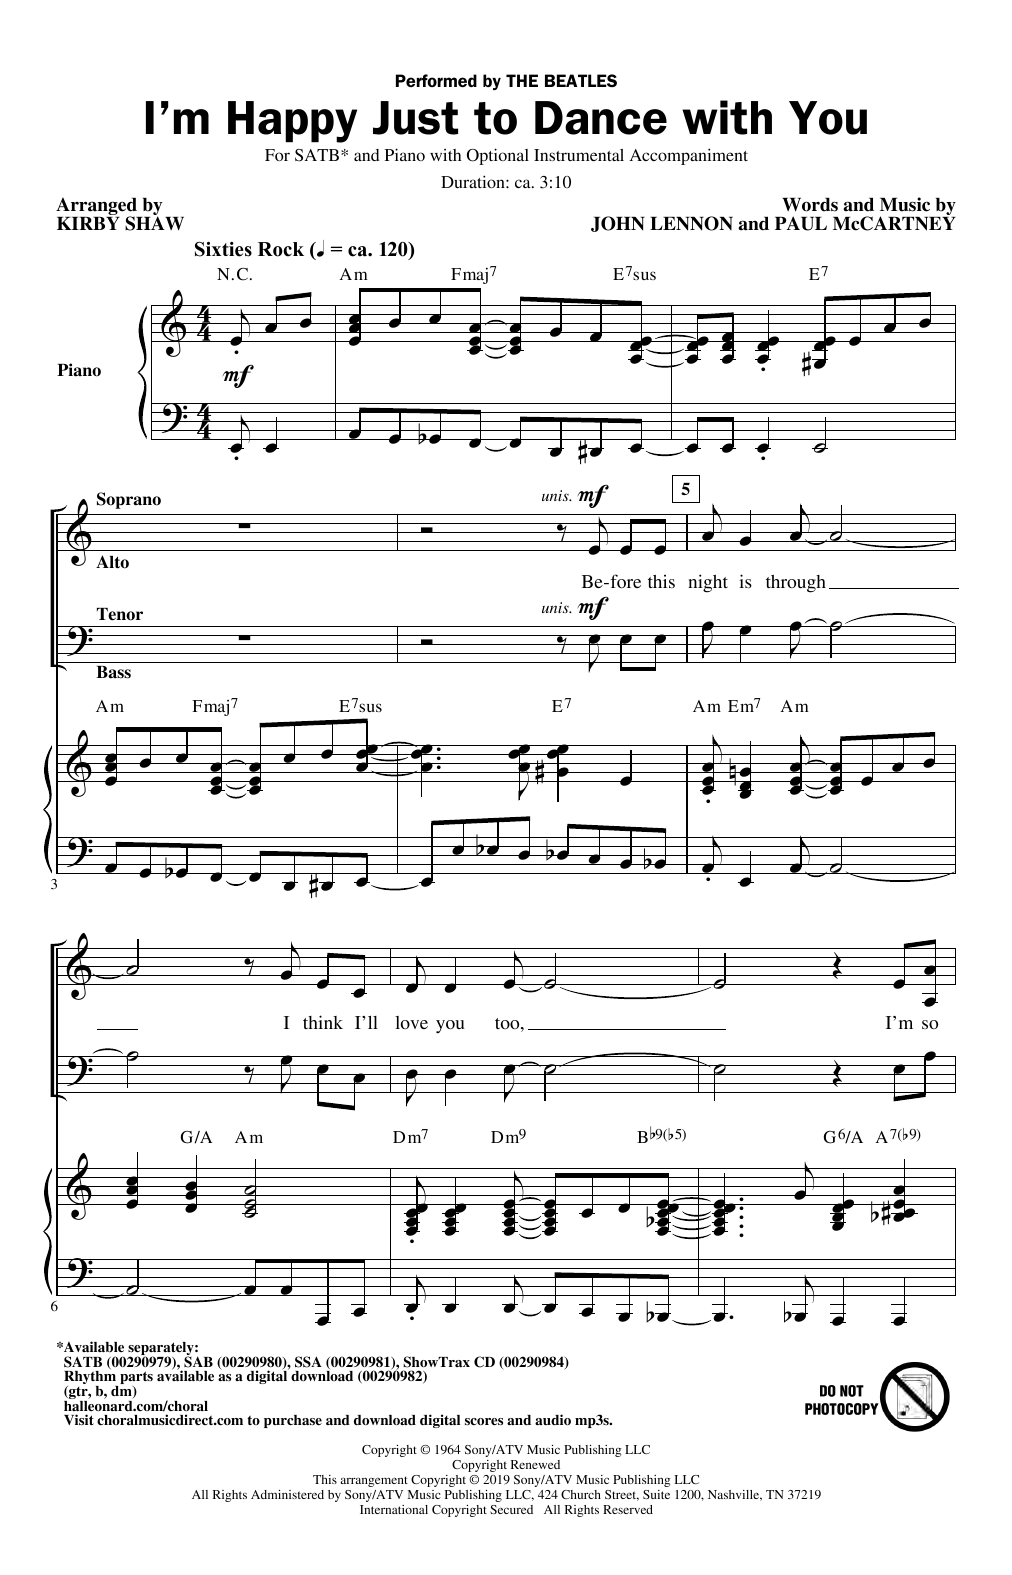 I'm Happy Just To Dance With You (arr. Kirby Shaw) (SATB Choir)